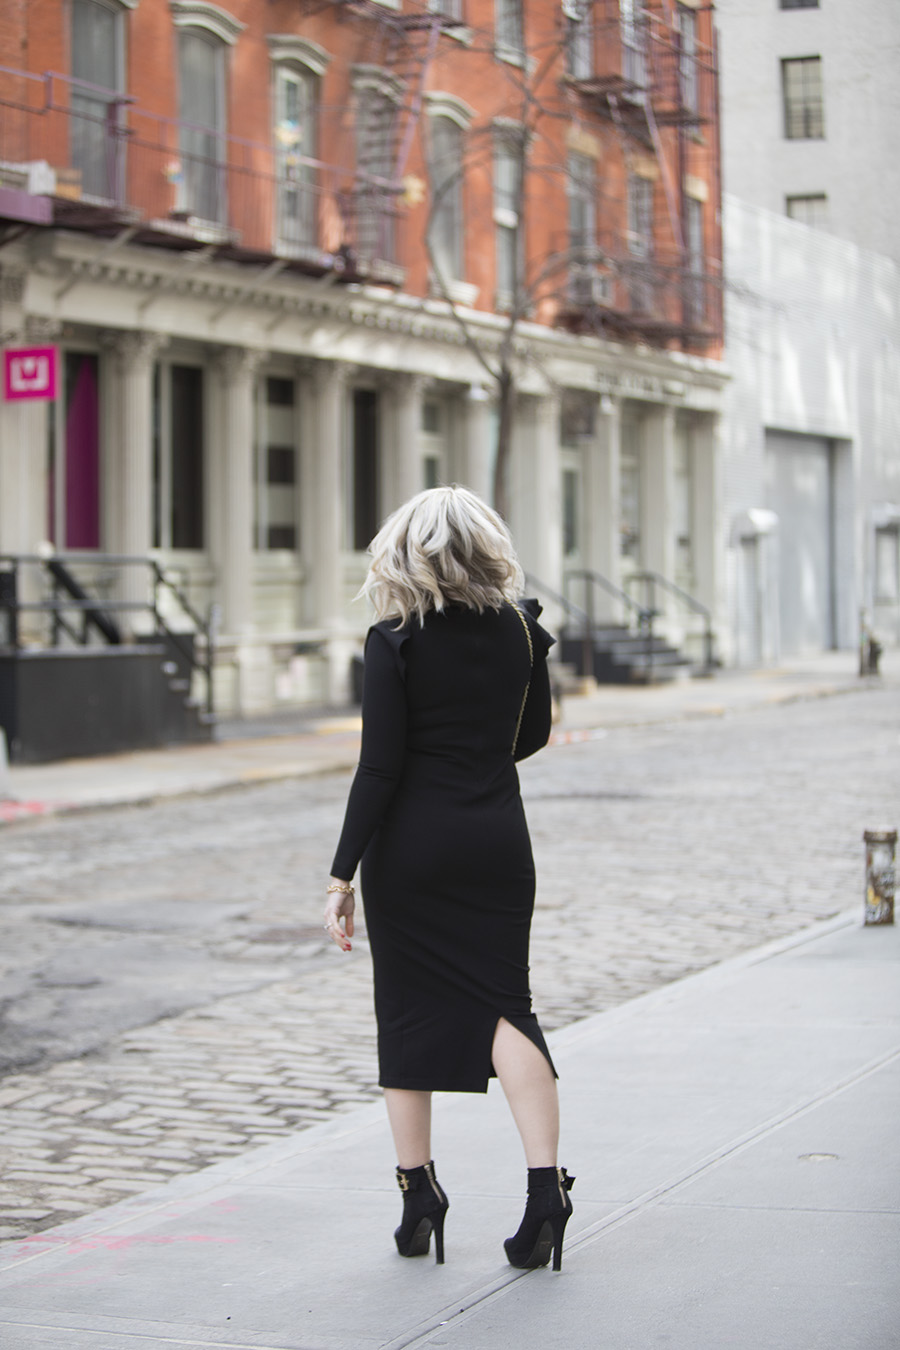 blonde lob haircut and long sleeve black dress